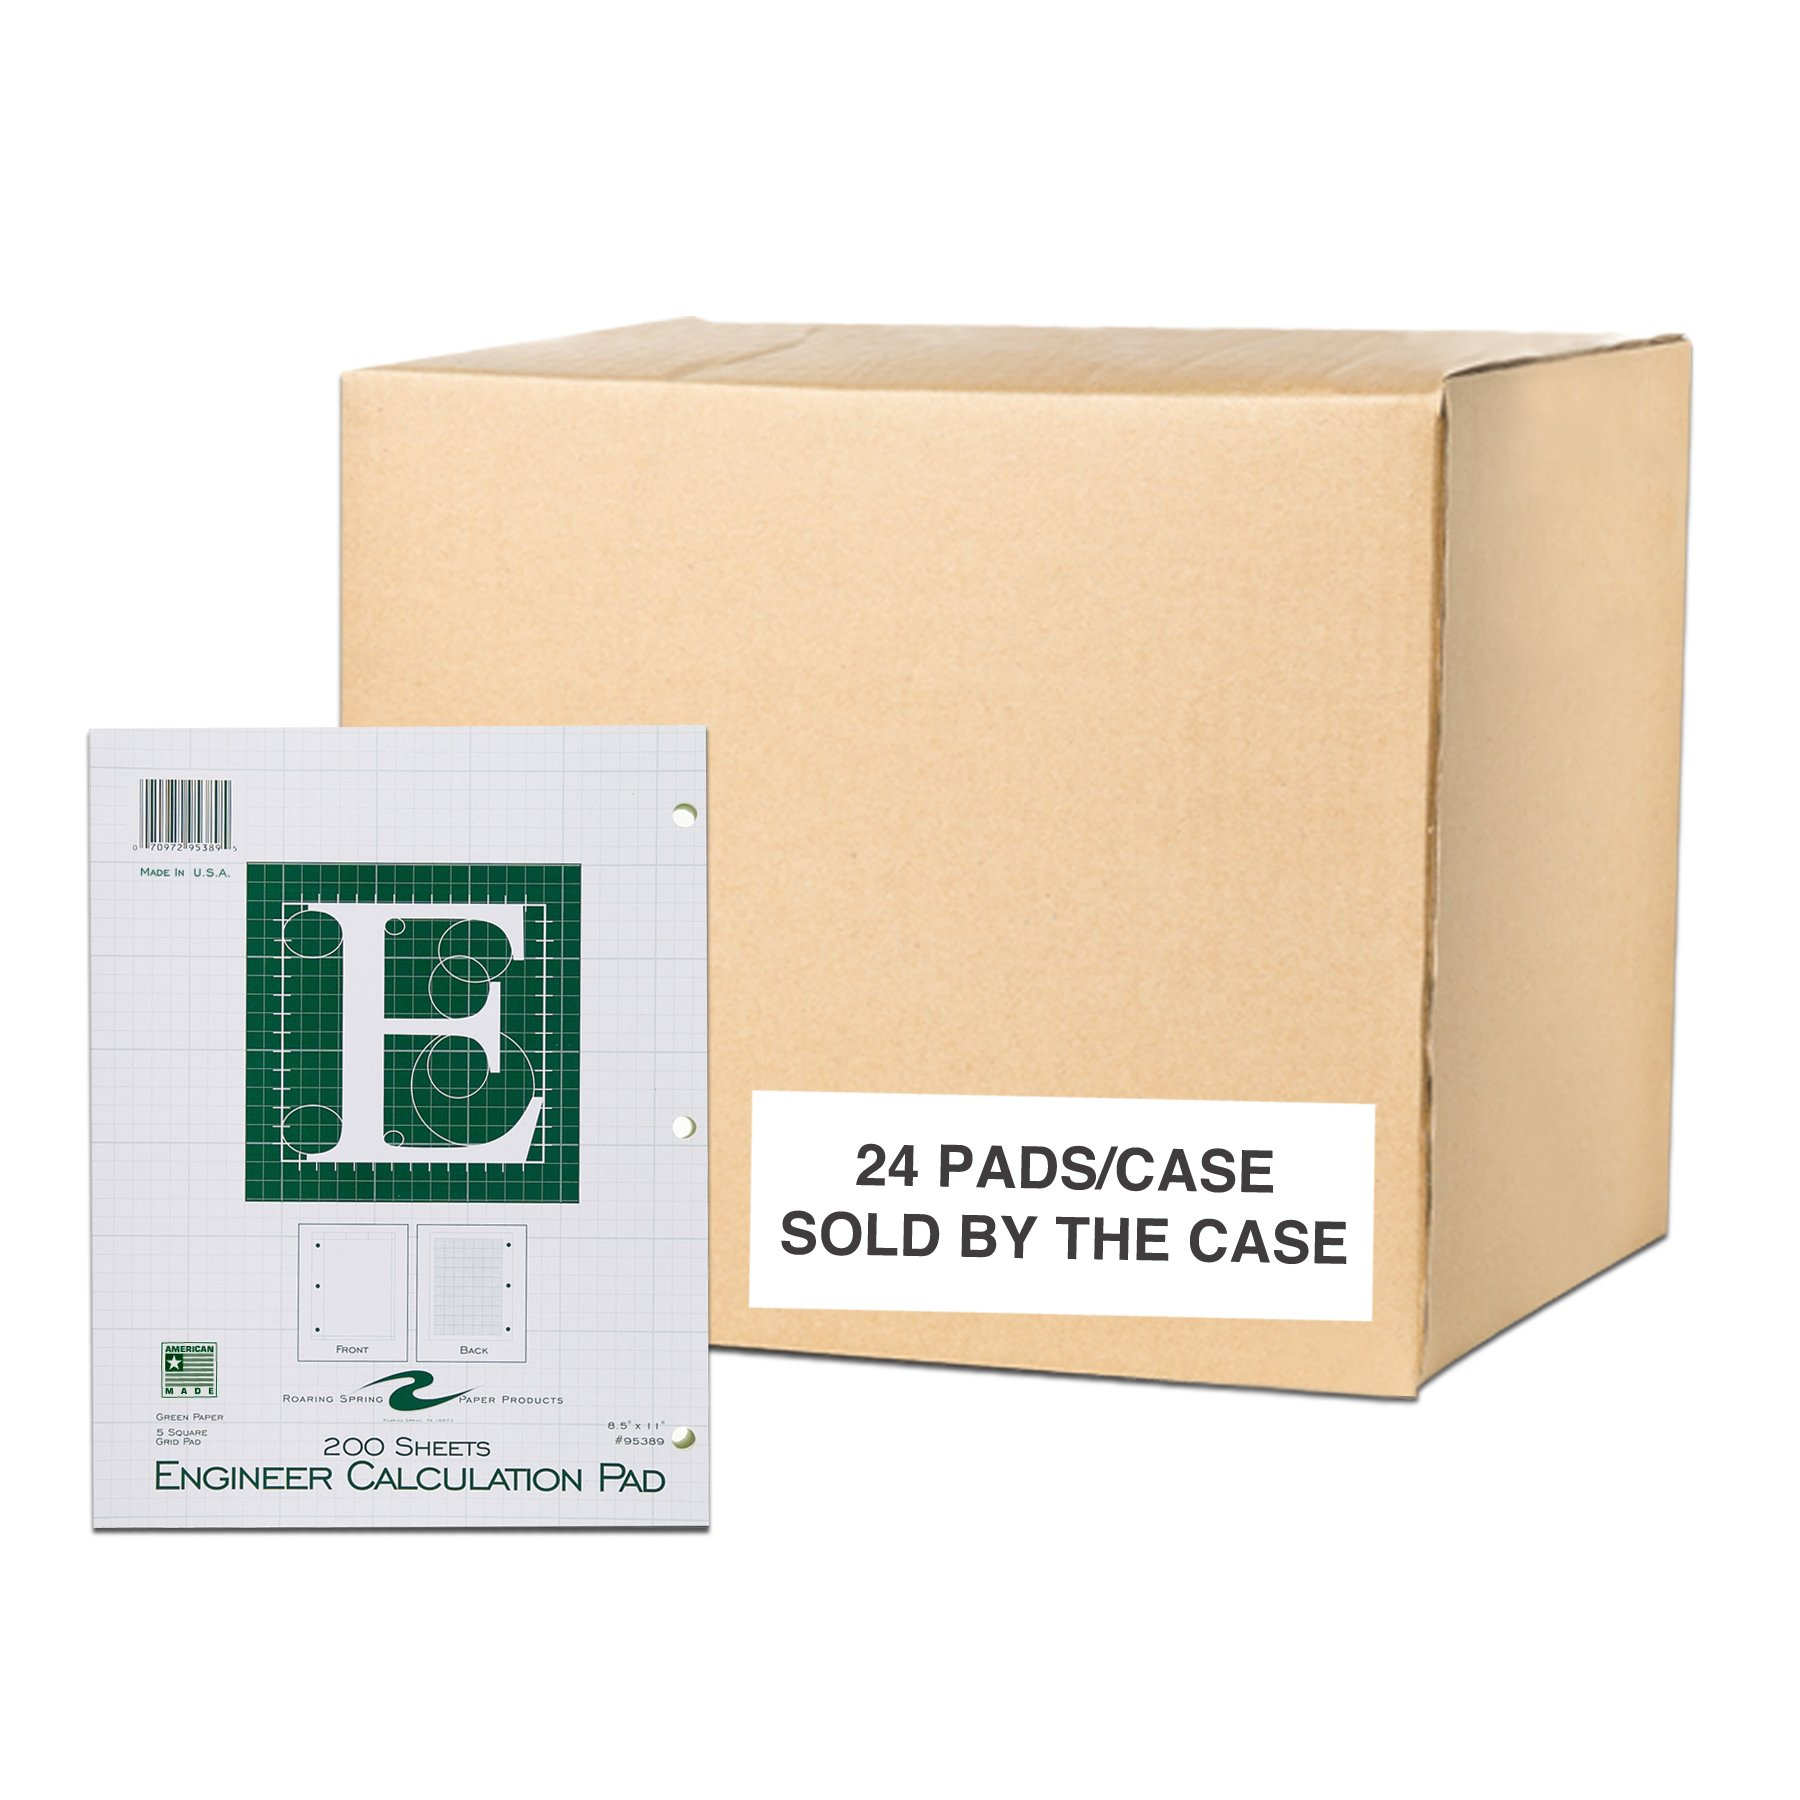 Case of 24 Engineer Pads, 8.5''x11'', 200 sheets of 16# Green tint Paper, 5x5 printed Grid, 3-Hole Punched, Extra Heavy Backing by Roaring Spring